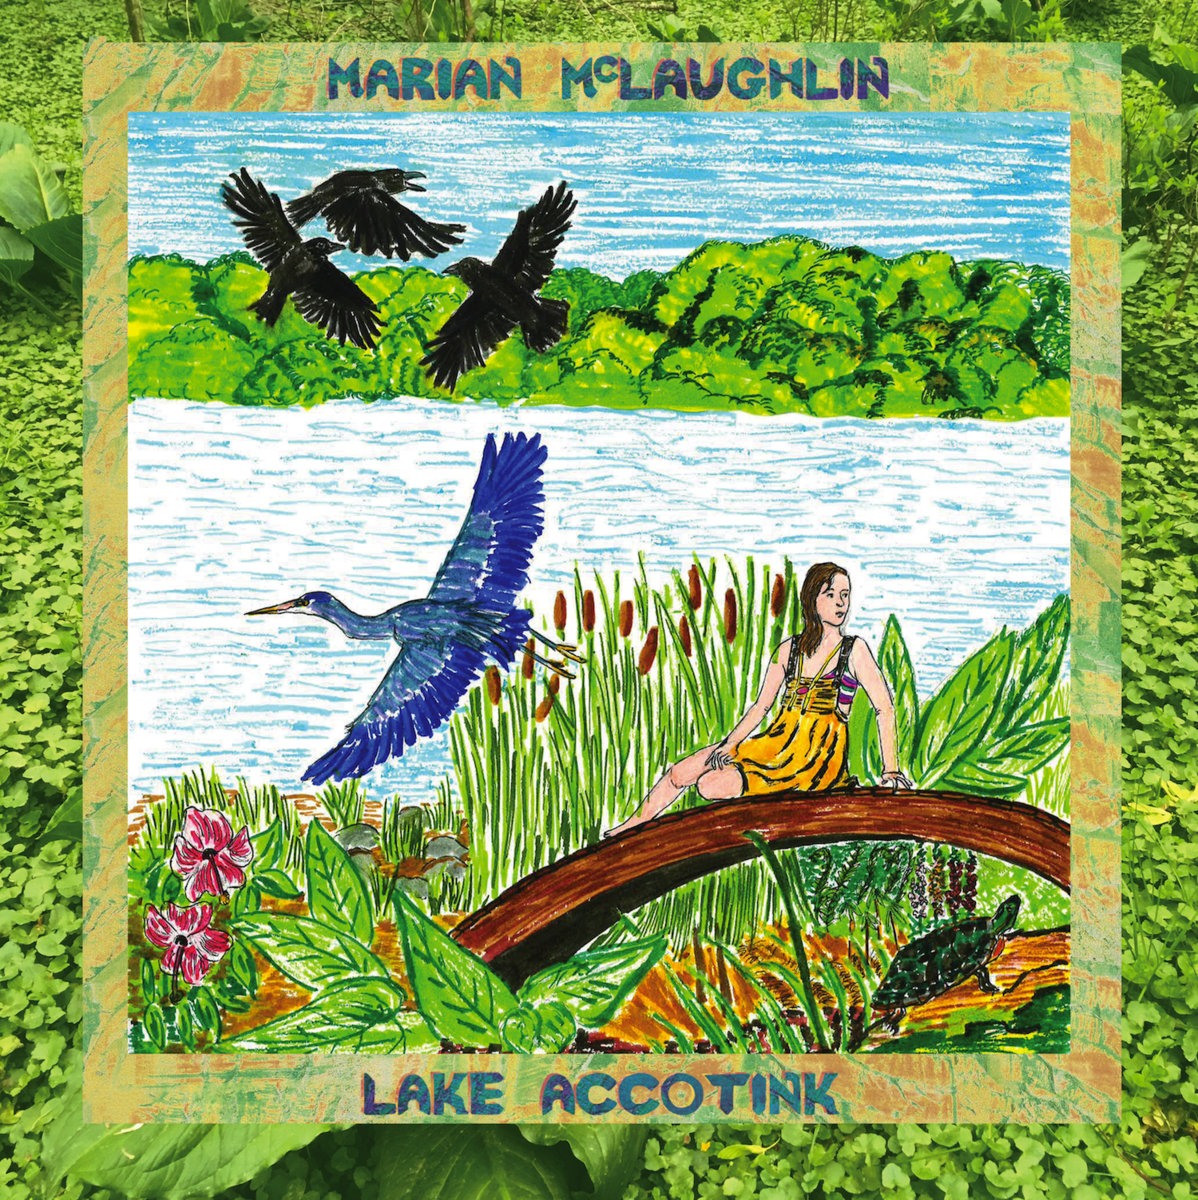 Lake AccotinkMarian McLaughlin - LINKSOfficial SiteFacebookTwitterLISTEN ONSpotify Apple MusicBandcamp